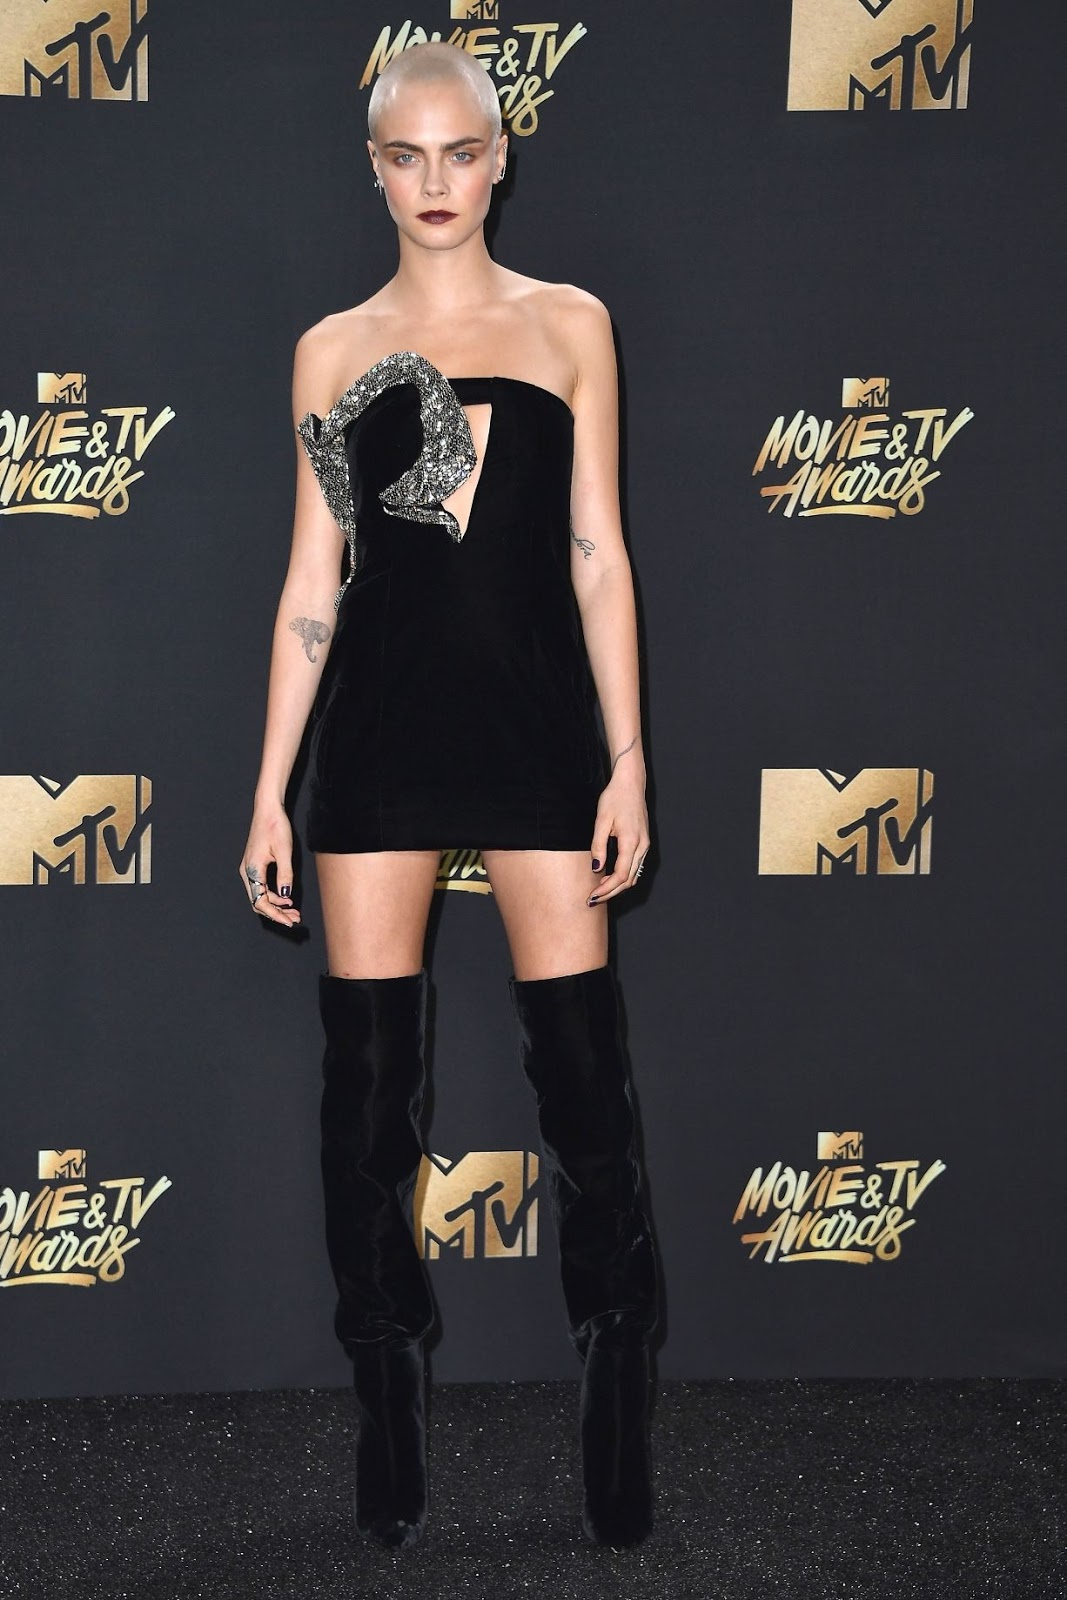 mtv movie awards 2017 cara delevinge